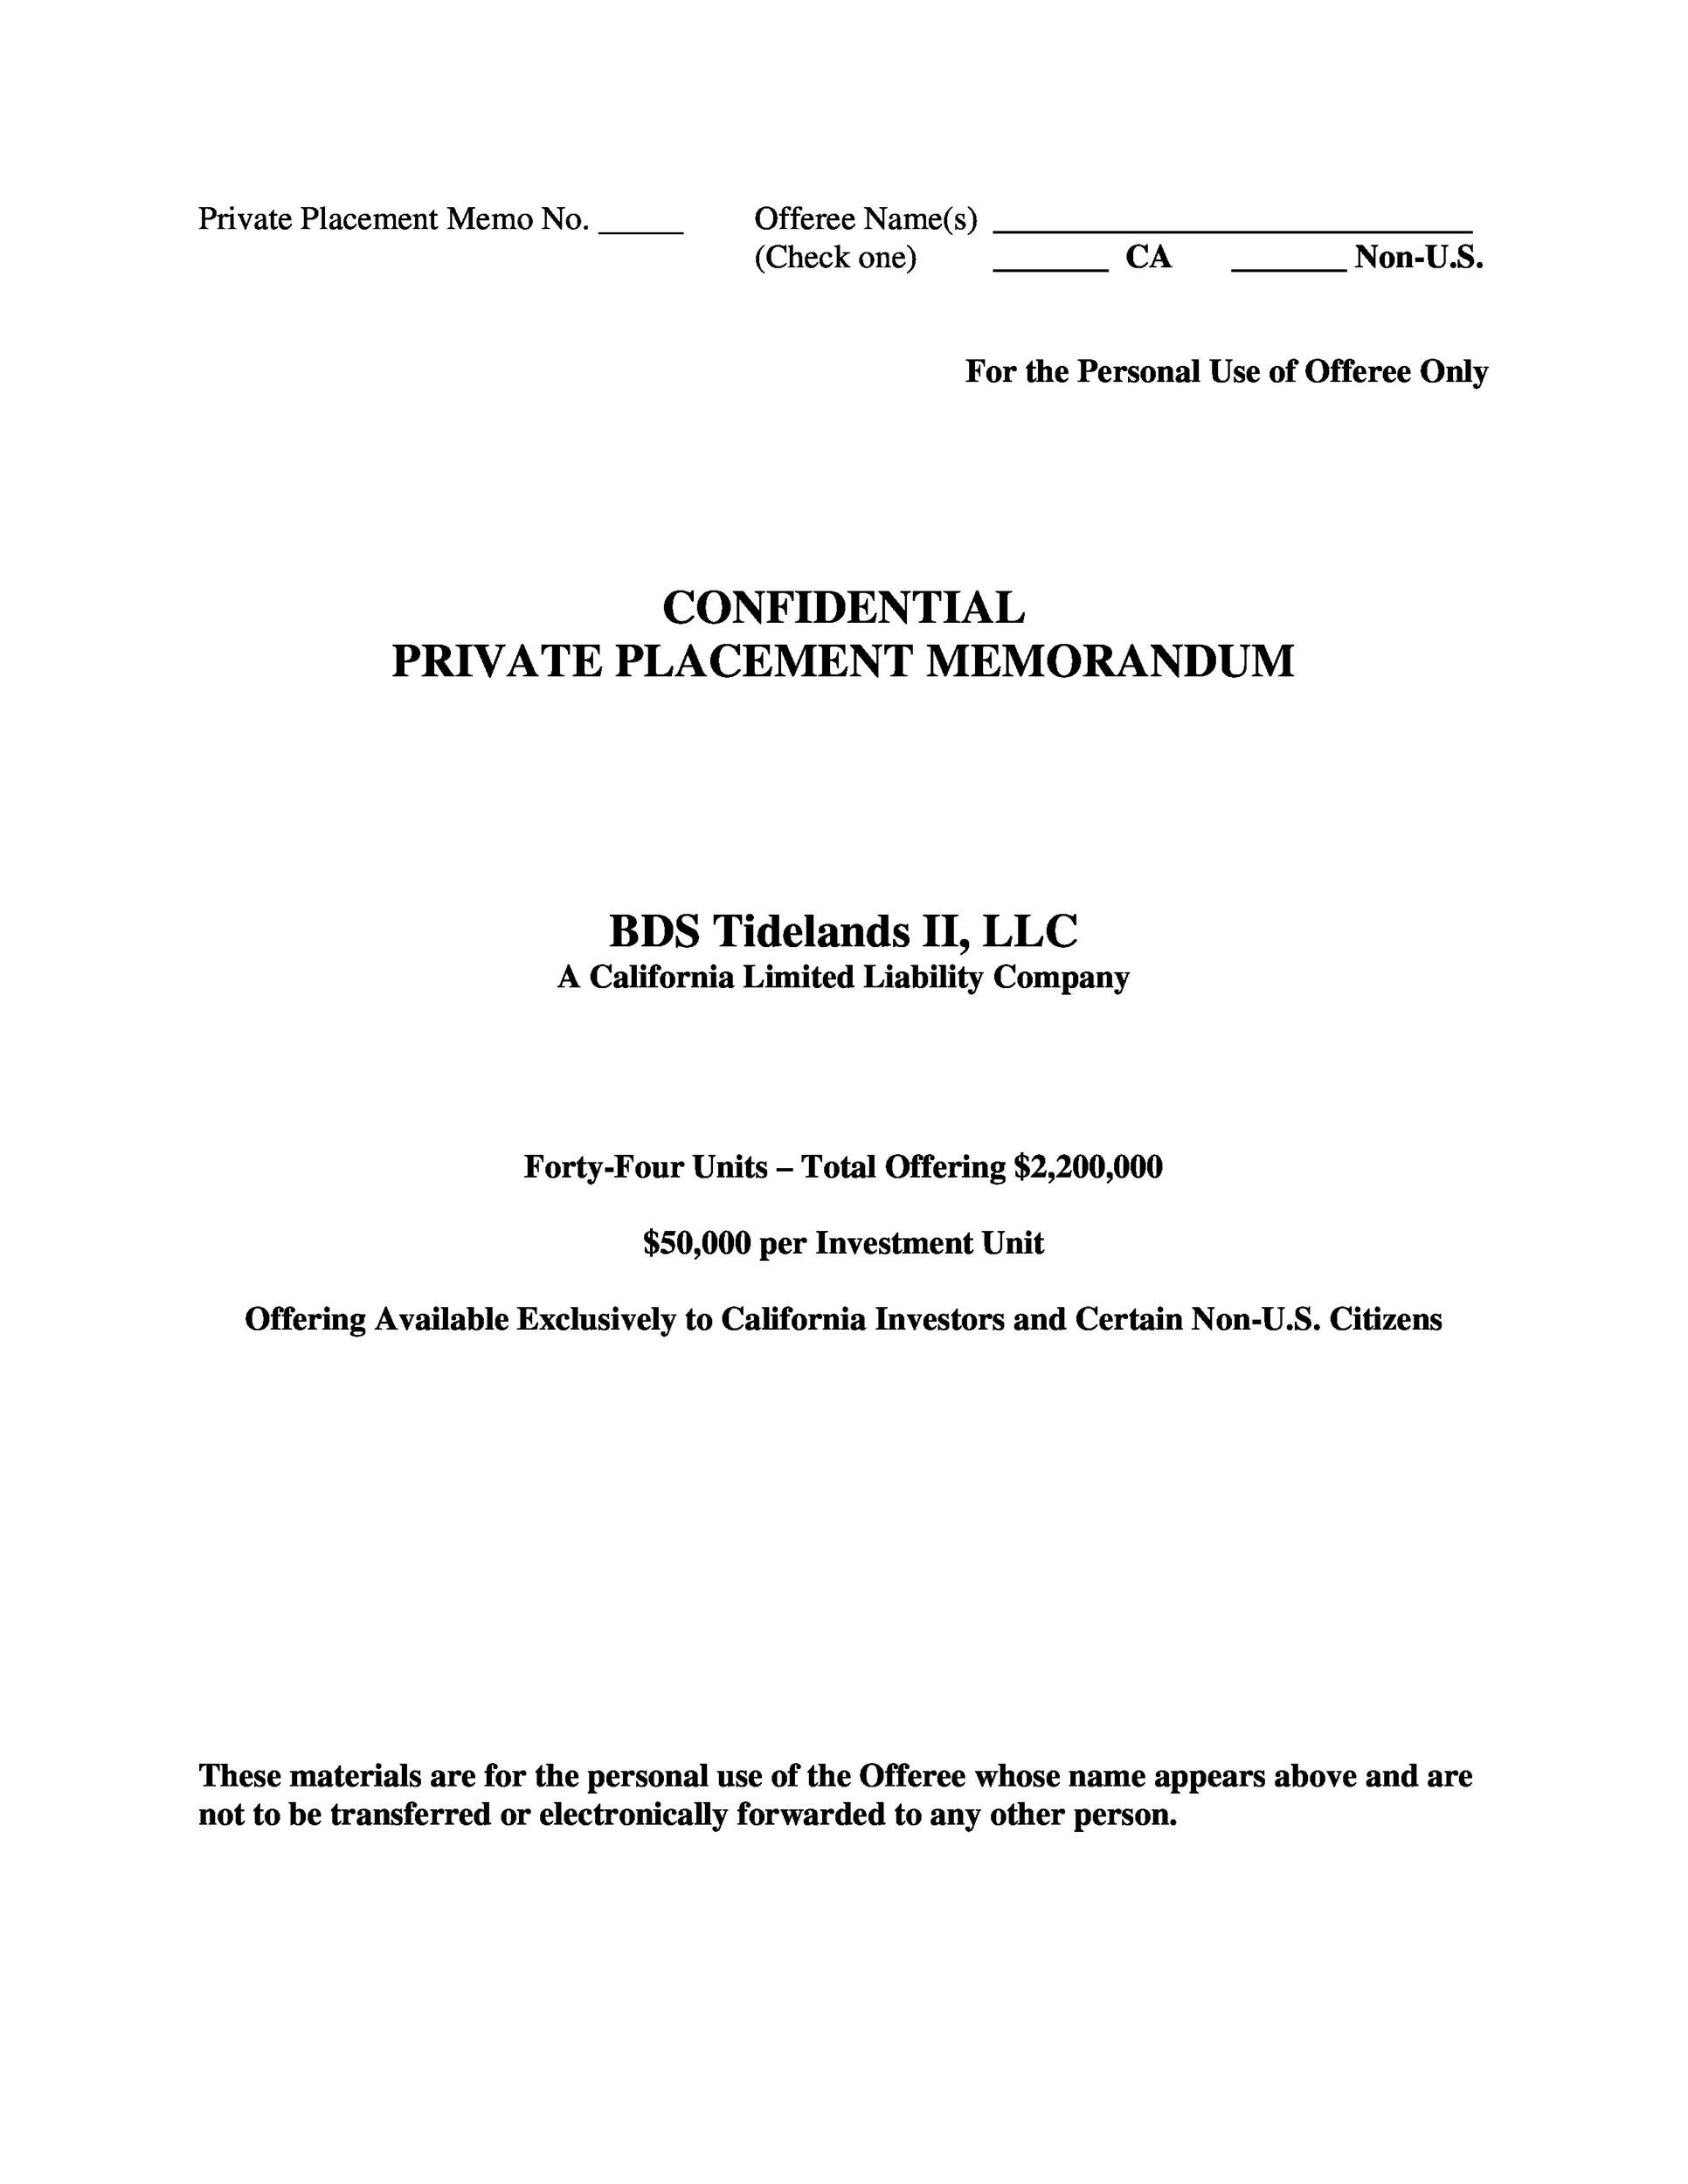 Free private placement memorandum template 36